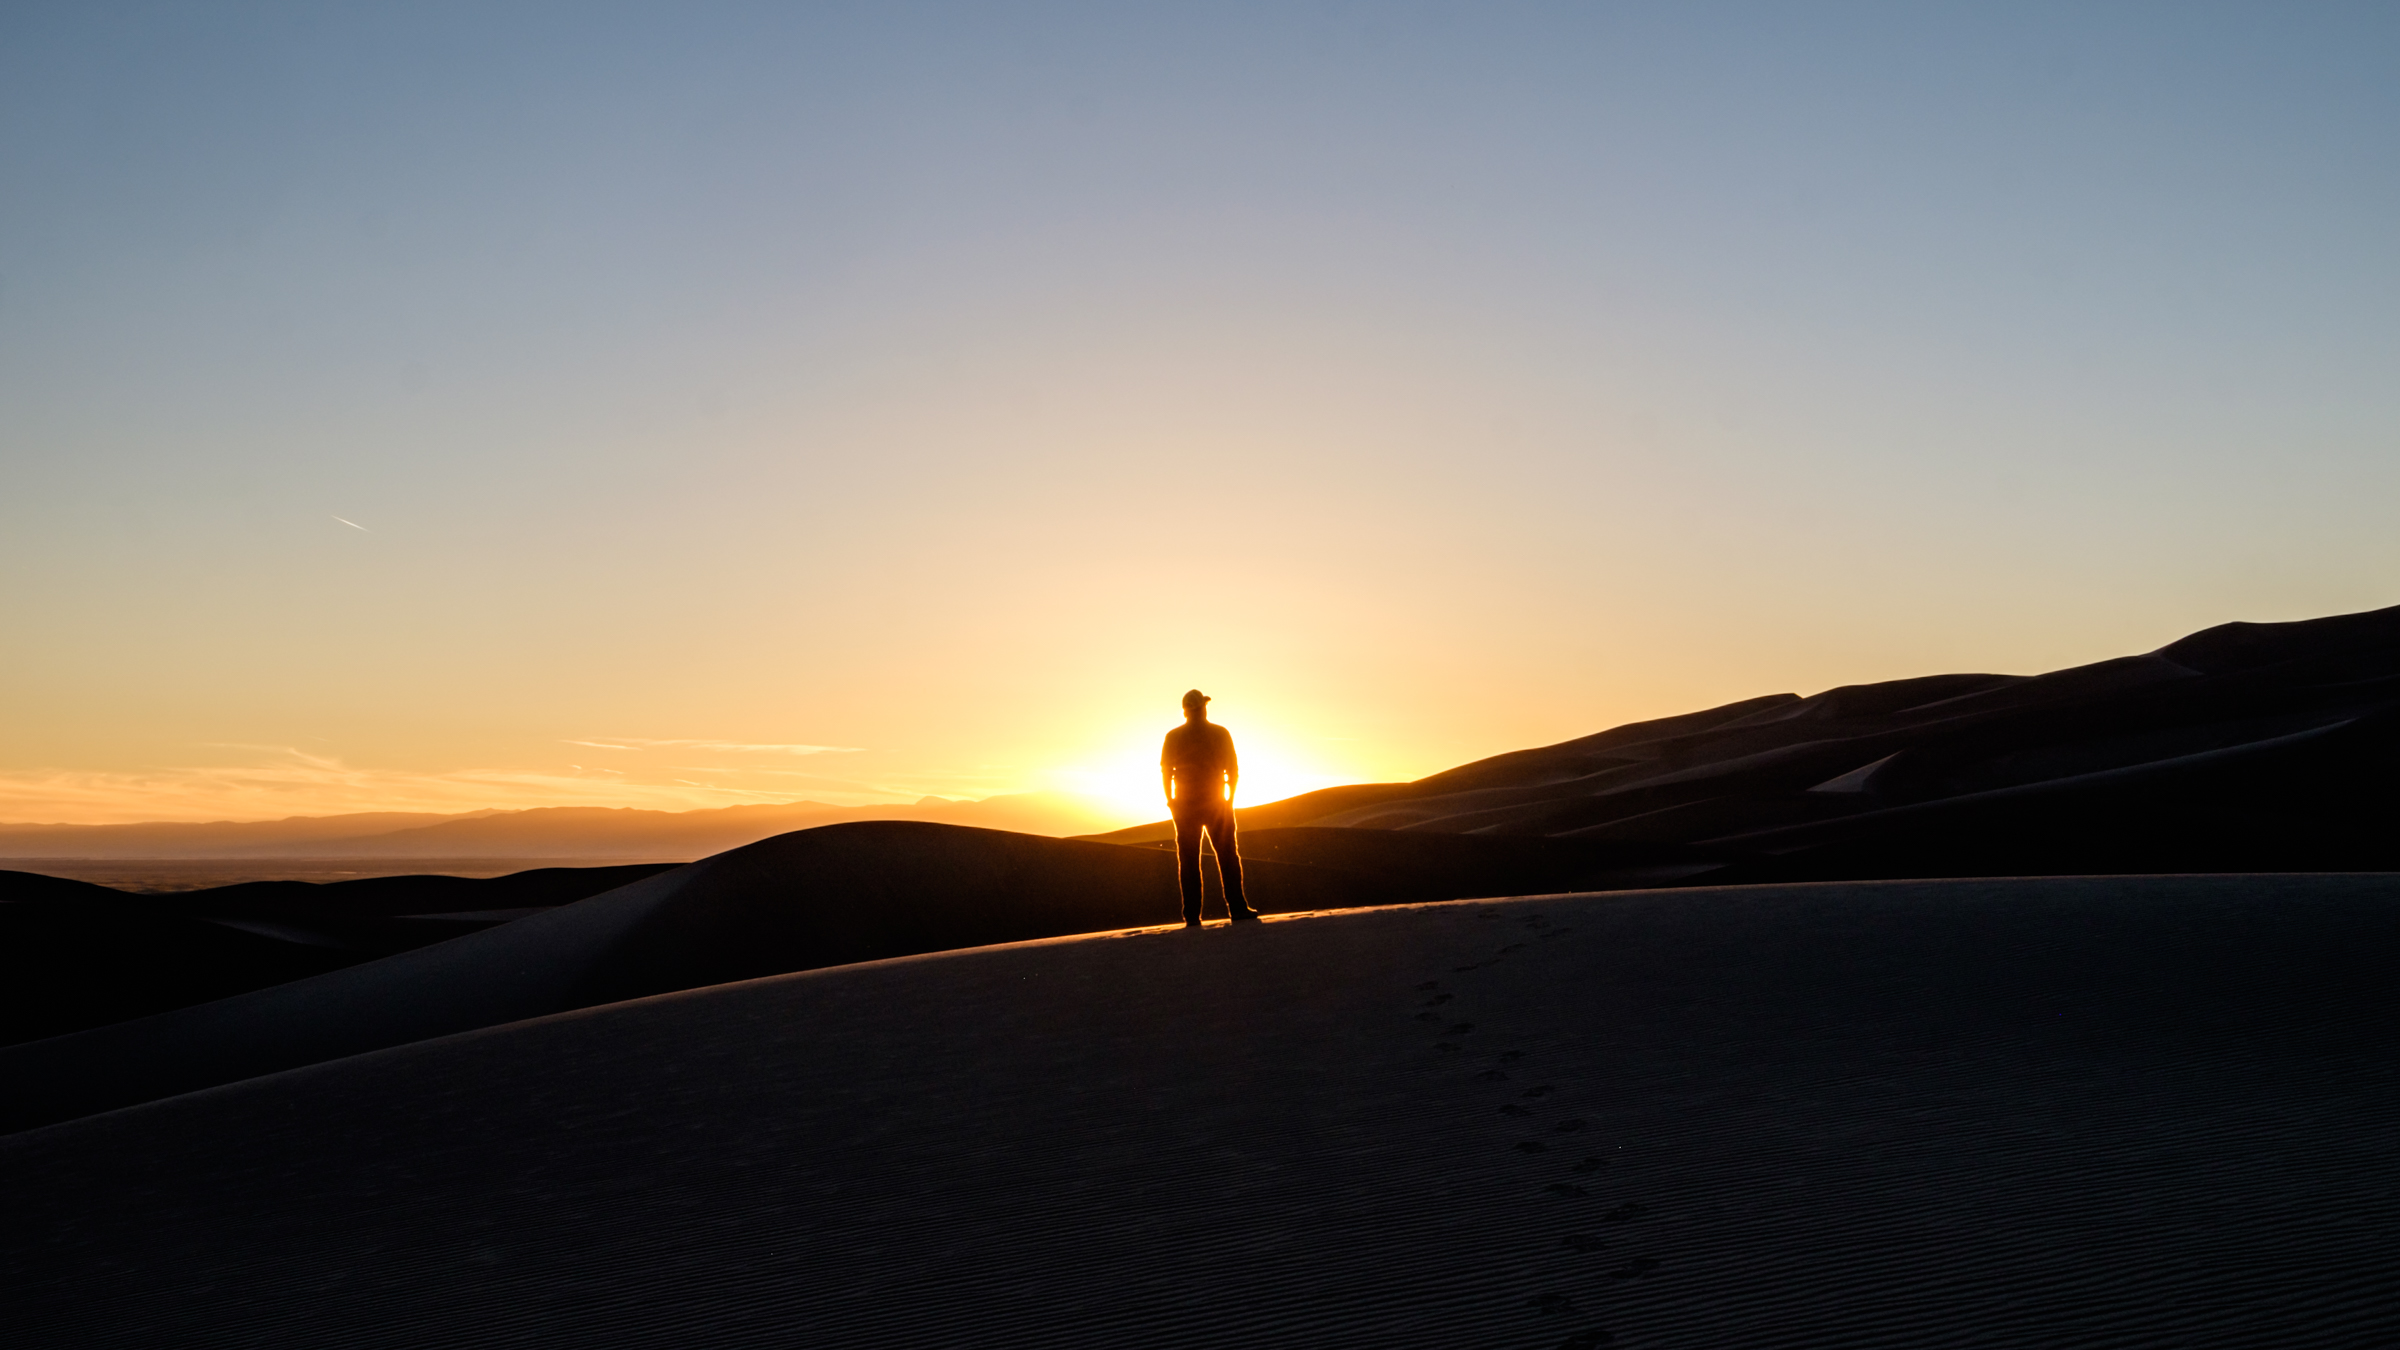 Catching the sunset atop the Great Sand Dunes.